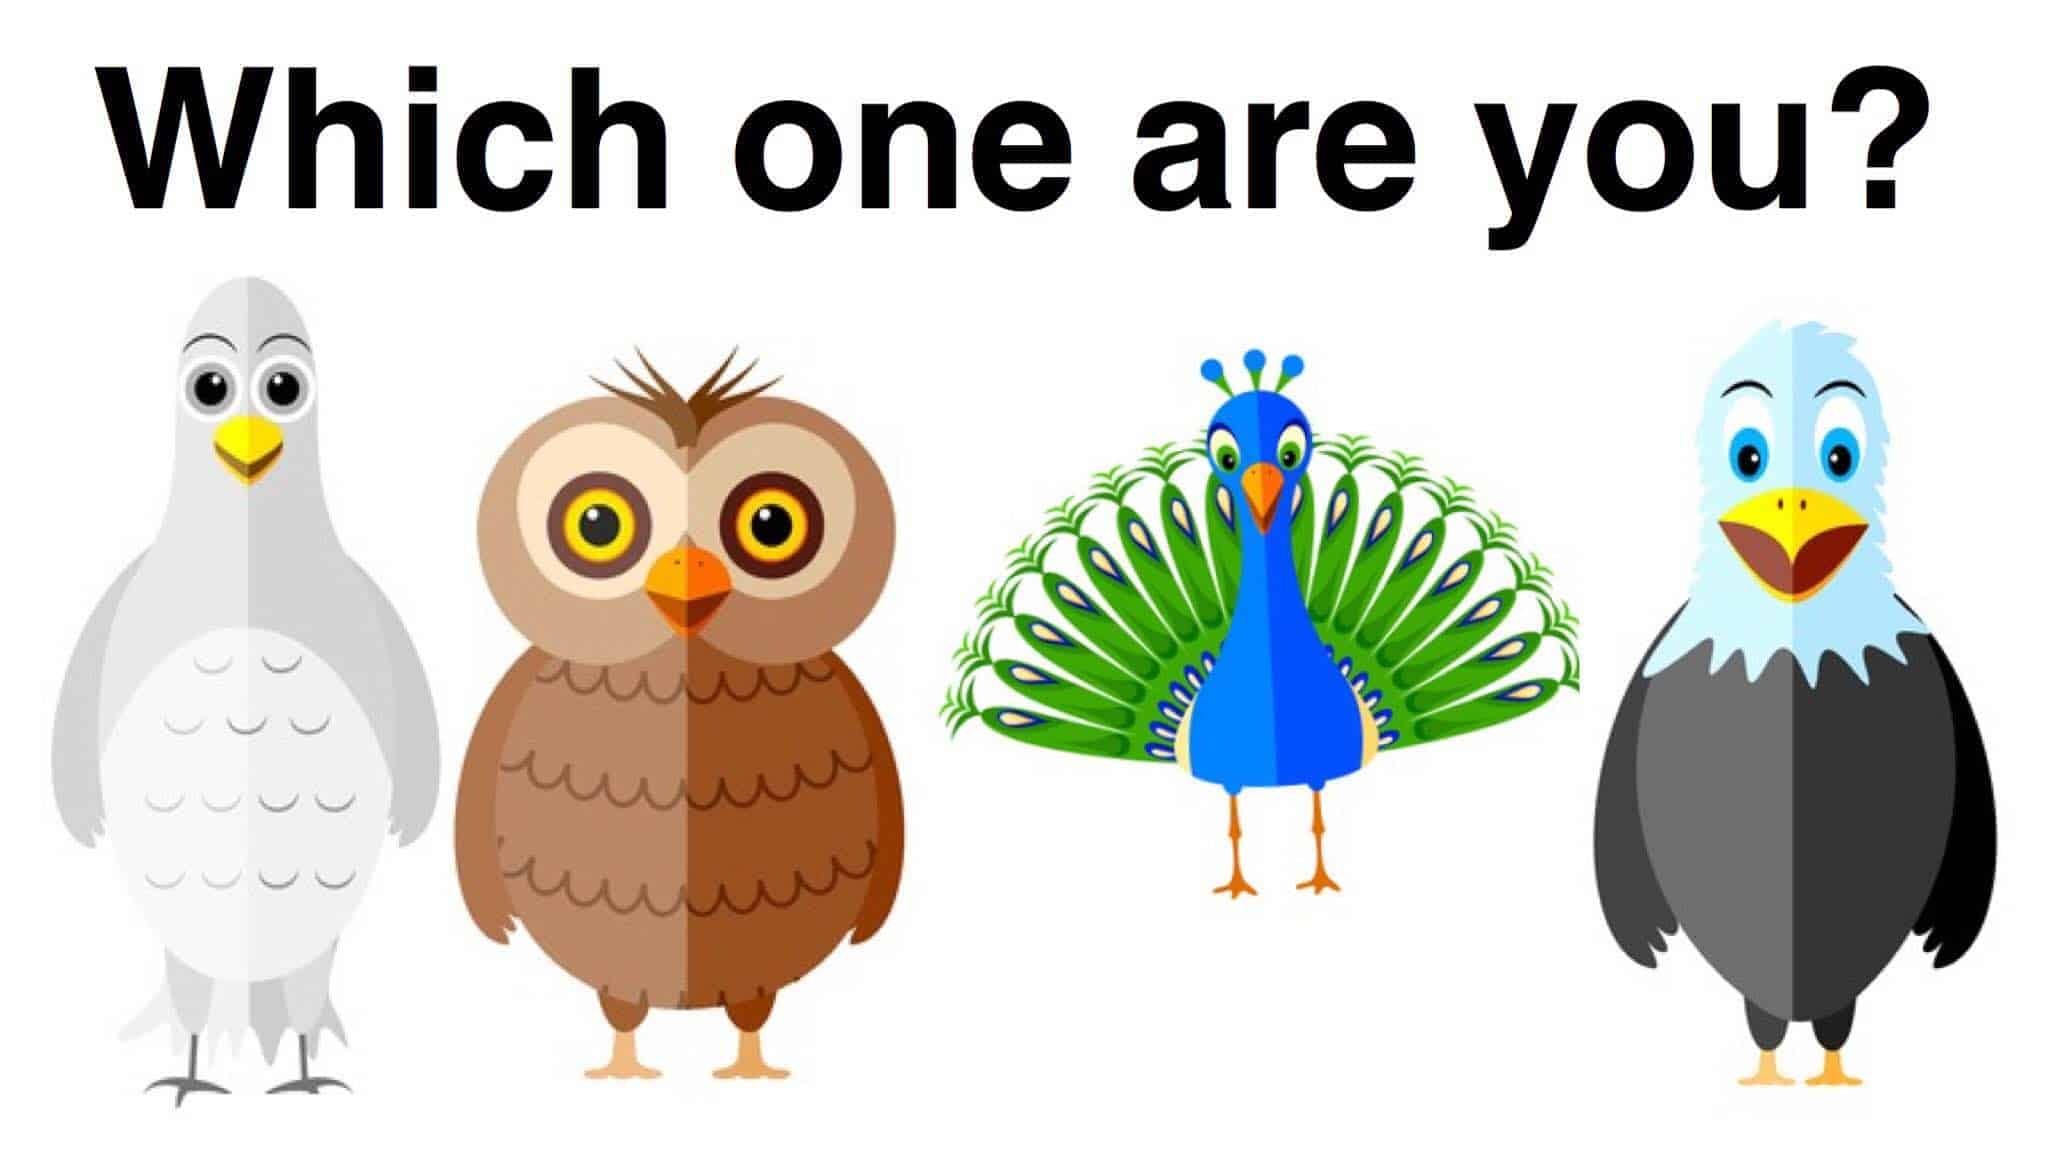 photo about Printable Leadership Personality Test called Which Hen Character Fashion Are Yourself?